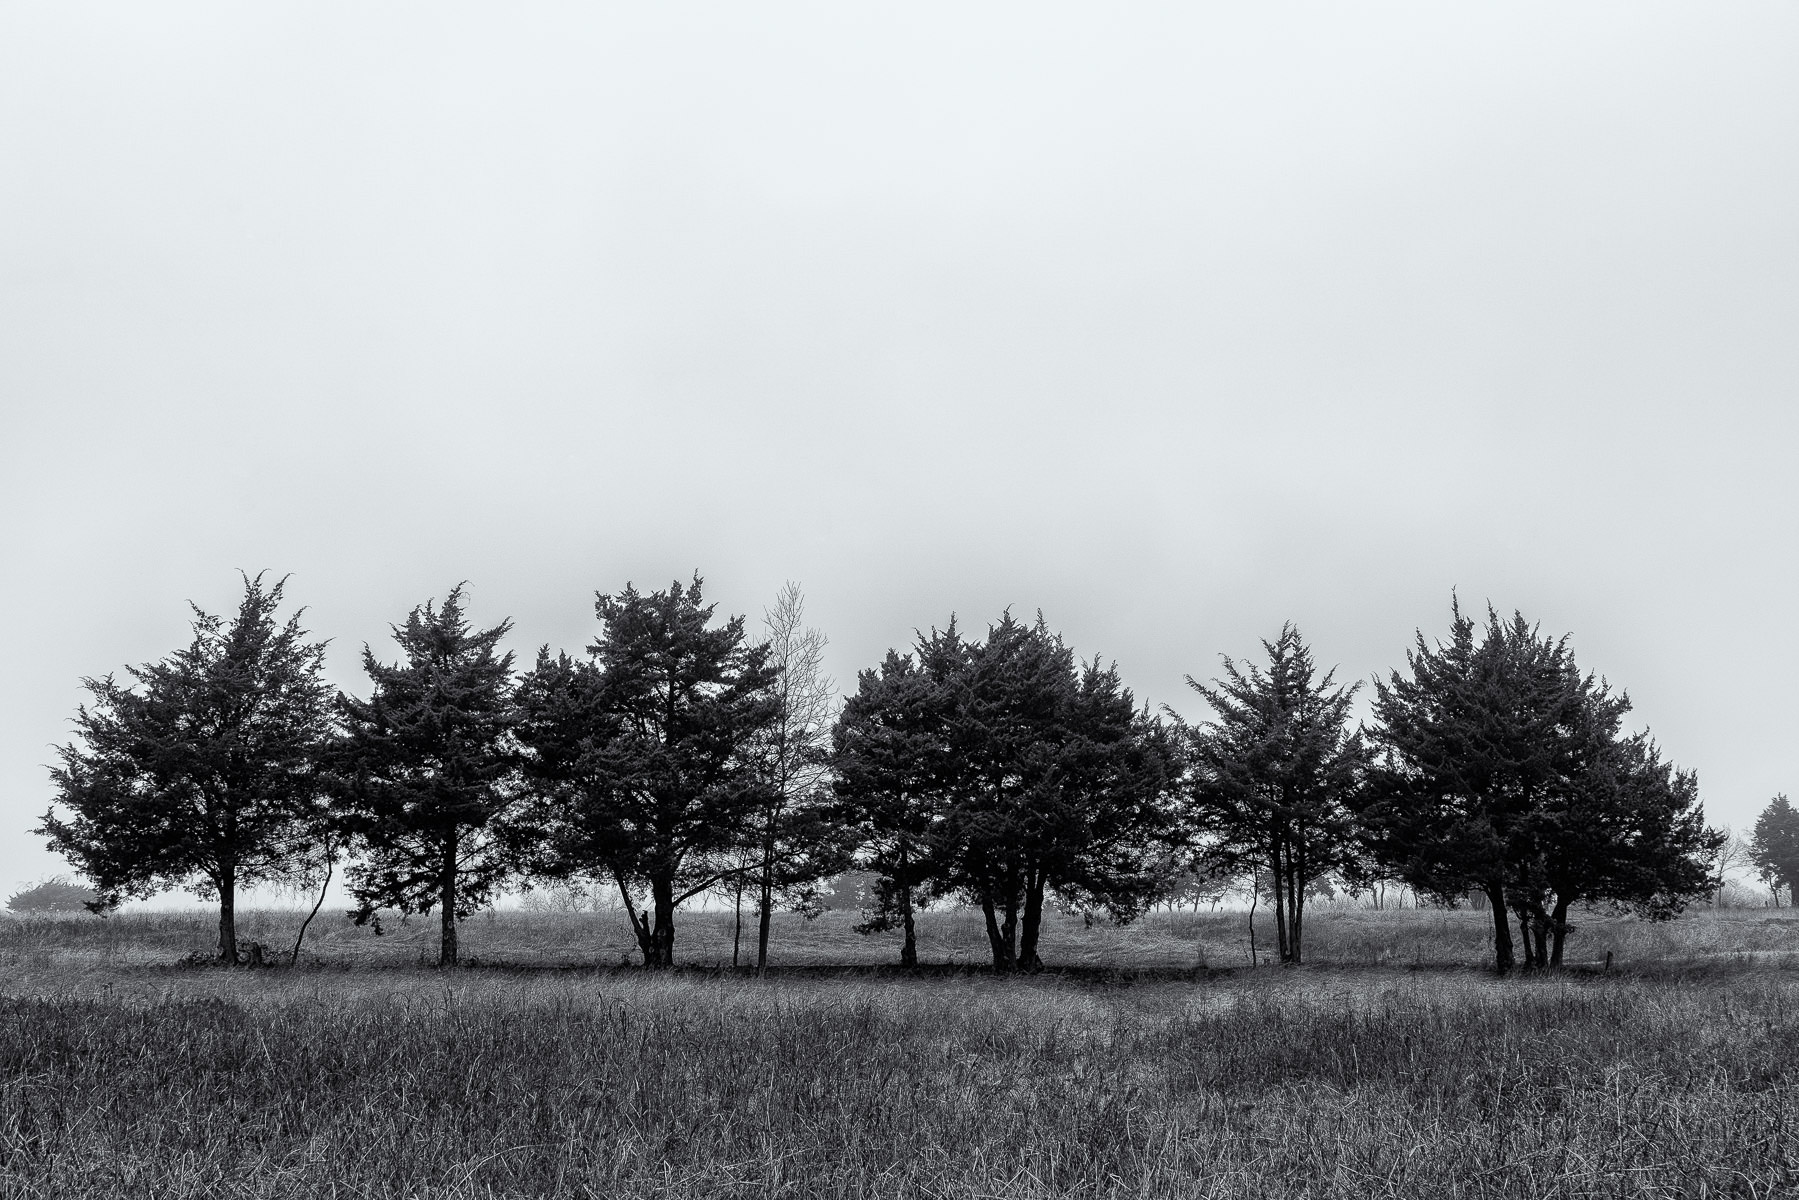 Trees in a field at McKinney, Texas' Erwin Park.